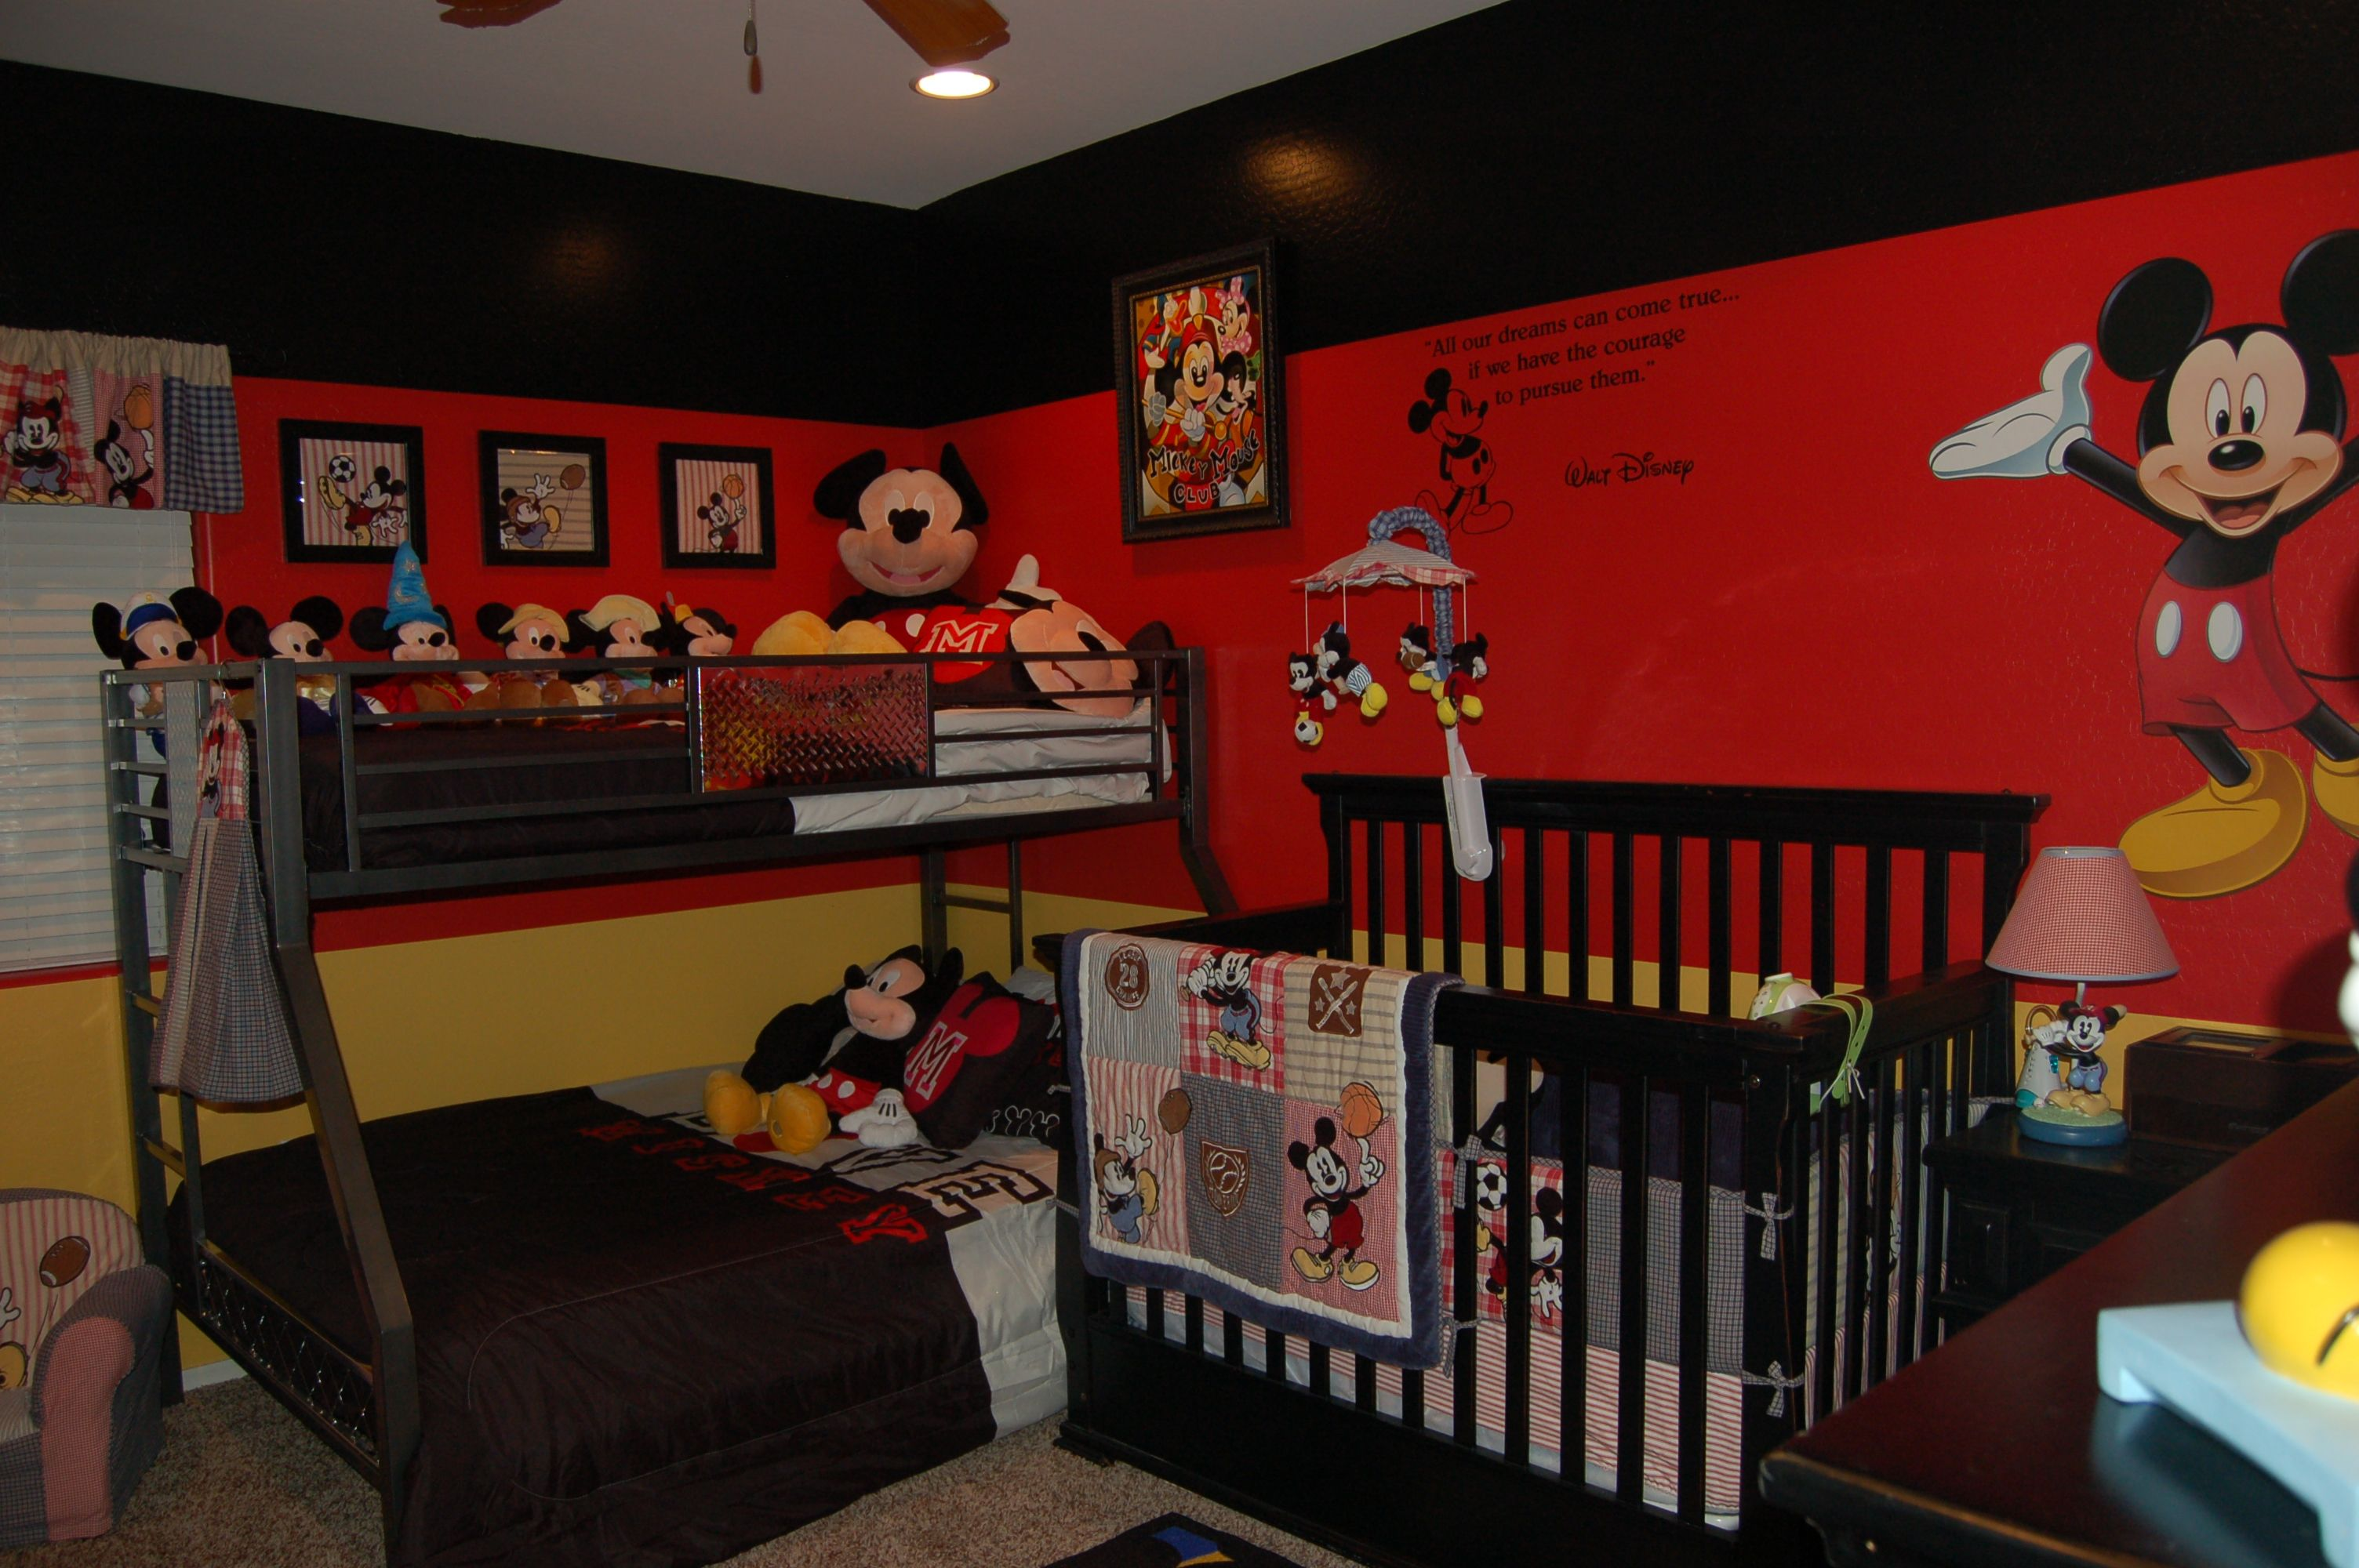 Mickey Mouse Decorations For Bedroom Disney Mickey Mouse Bedroom Decorating Wwwmydisneylovecom My